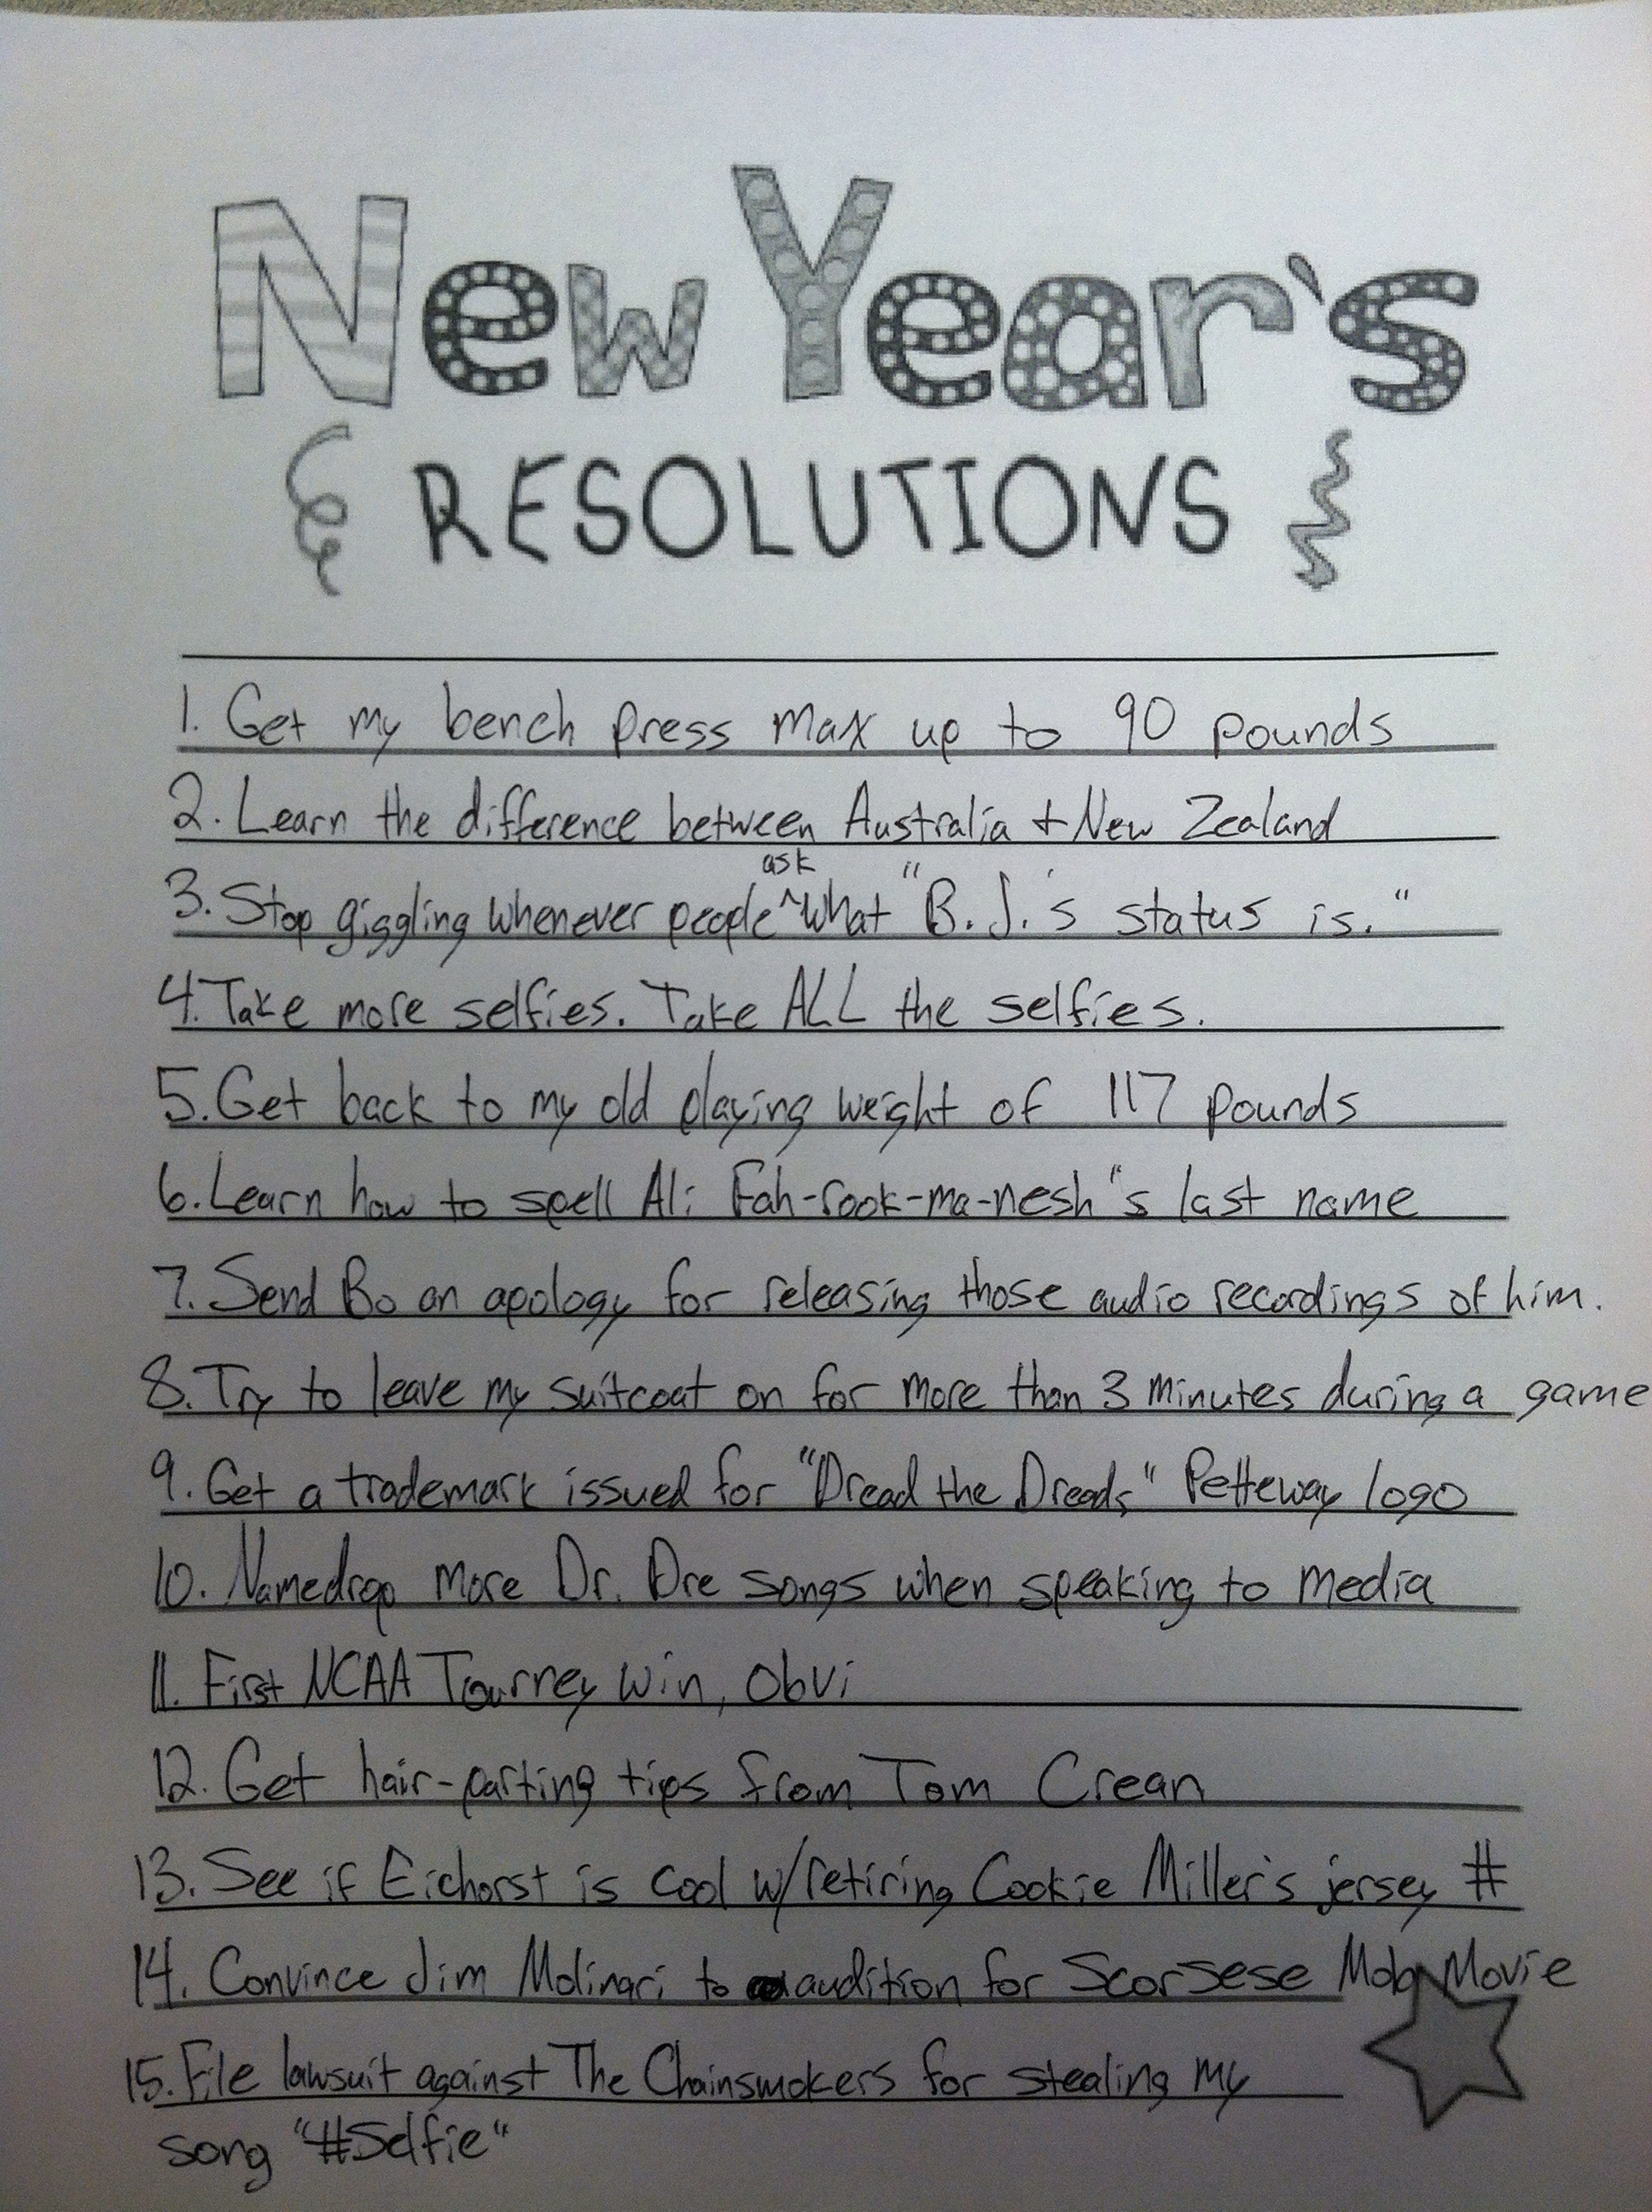 002 Img 40981 Essay Example My New Year Singular Resolution Student Tagalog In Hindi Full